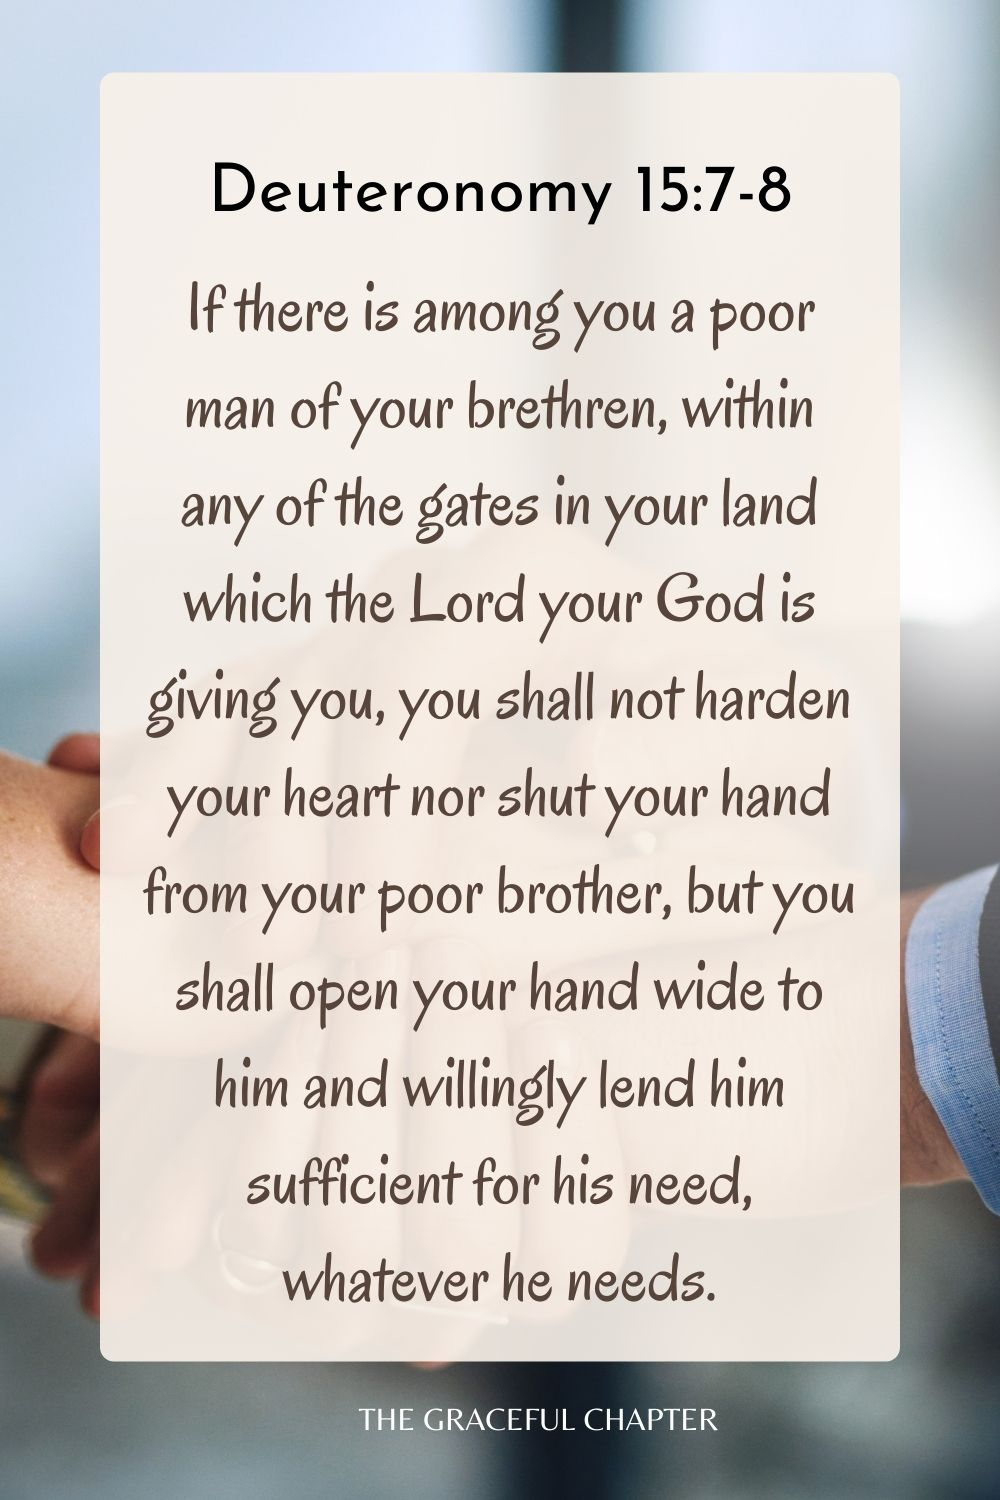 If there is among you a poor man of your brethren, within any of the gates in your land which the Lord your God is giving you, you shall not harden your heart nor shut your hand from your poor brother, but you shall open your hand wide to him and willingly lend him sufficient for his need, whatever he needs. Deuteronomy 15:7-8